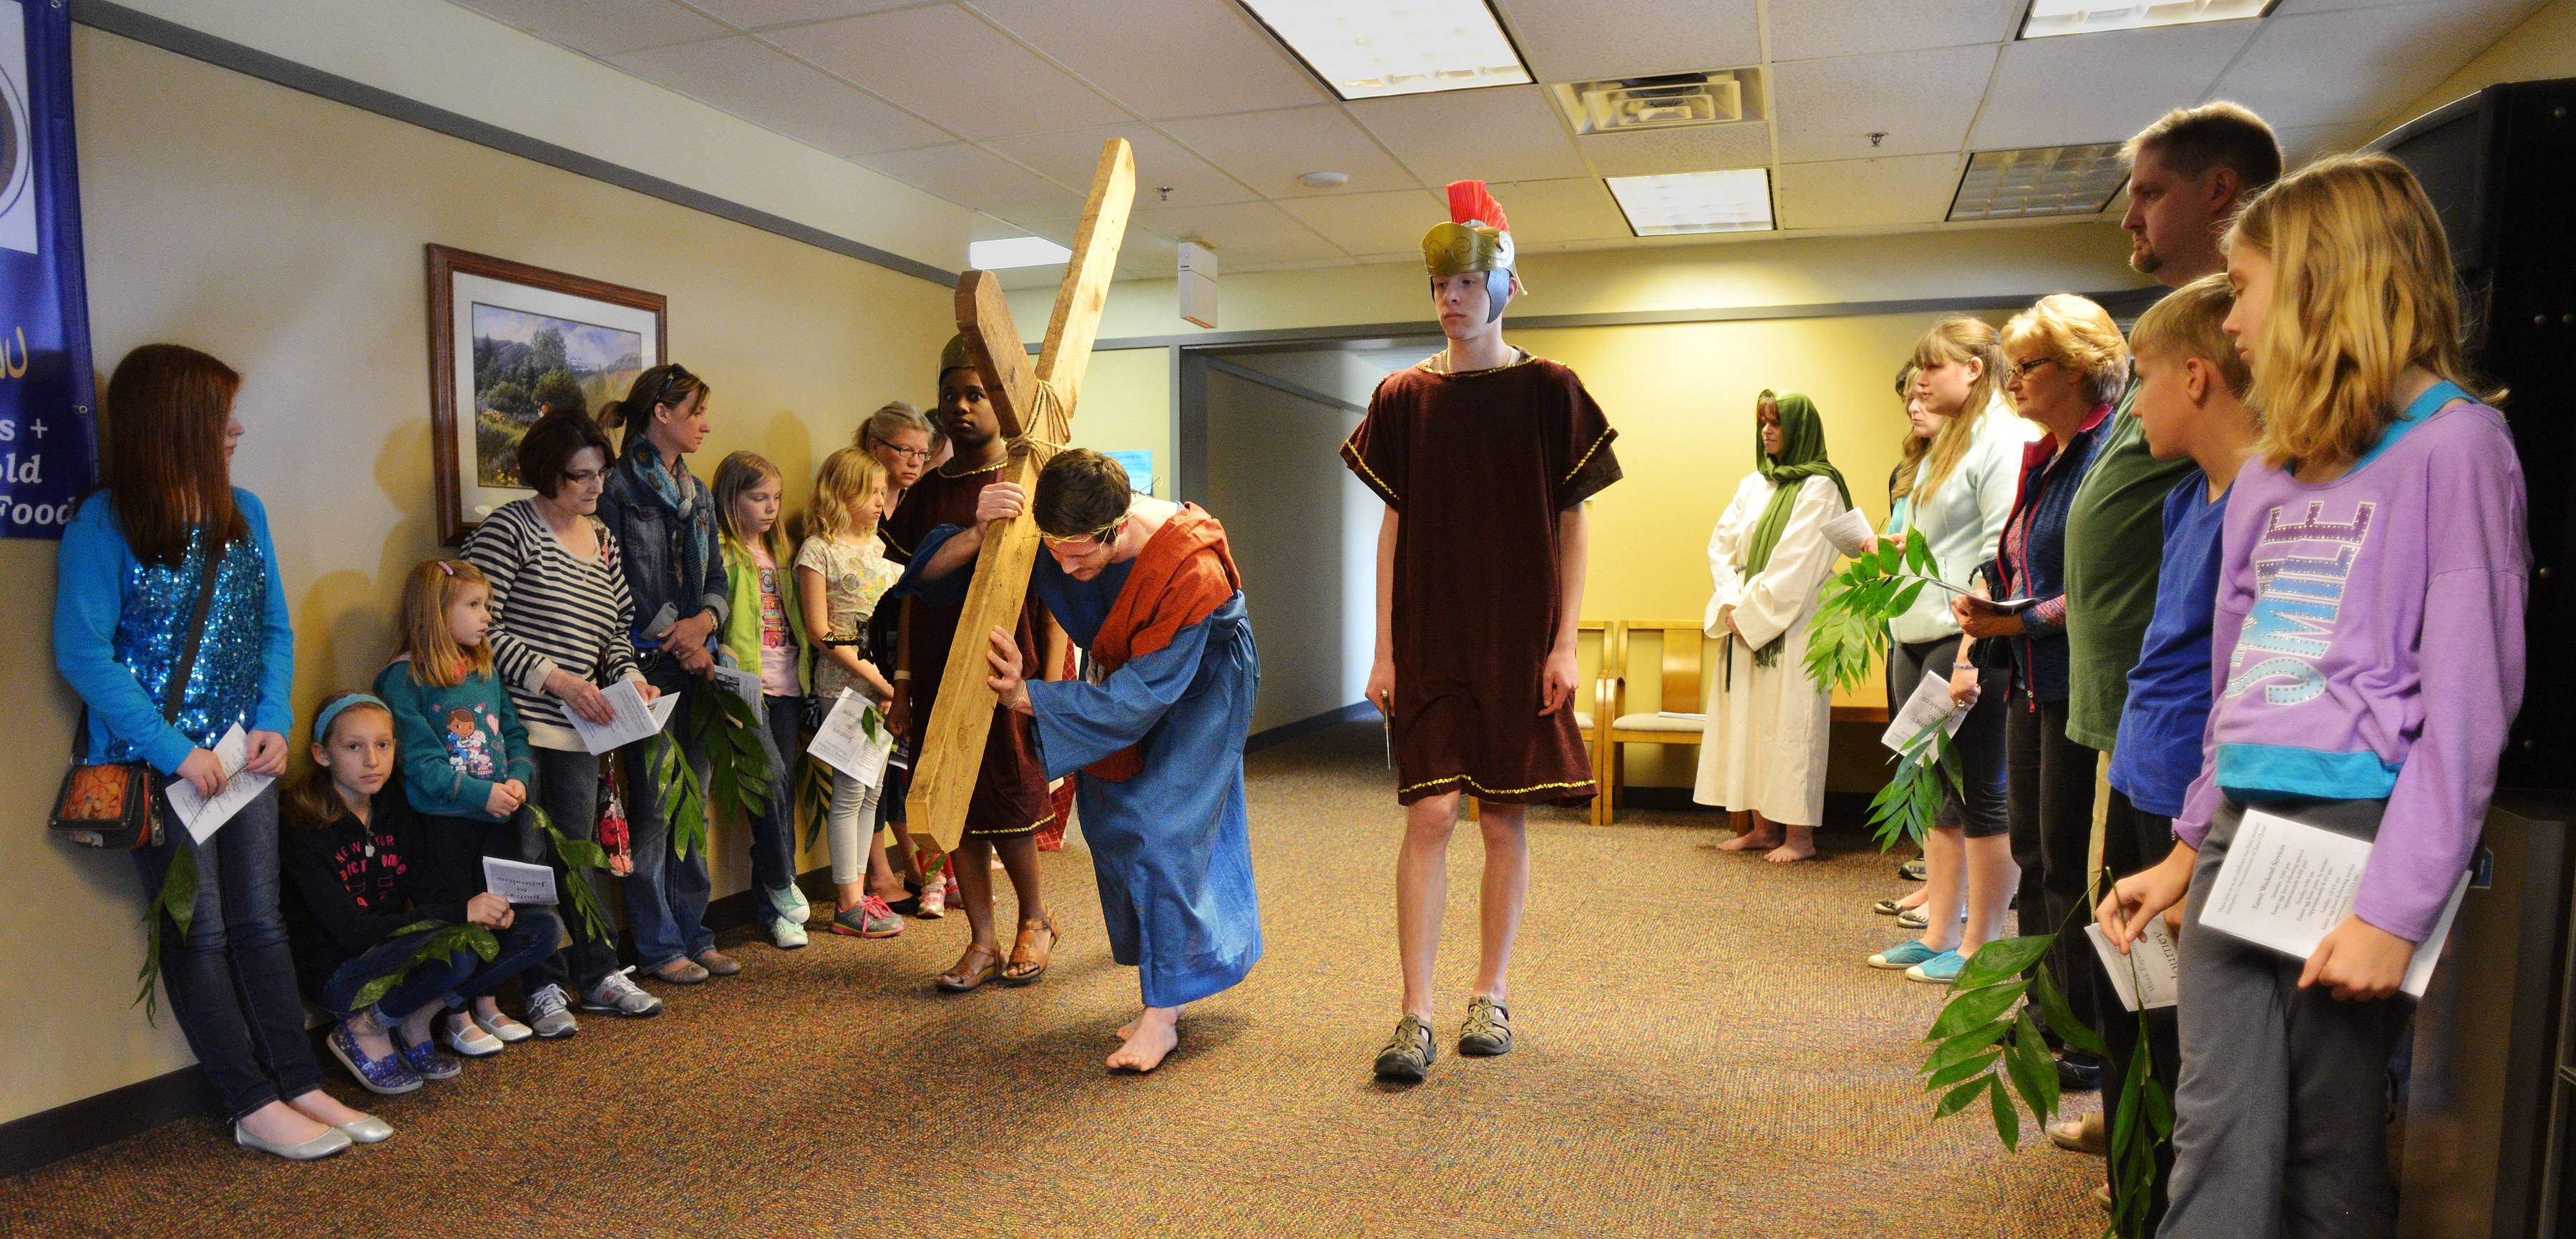 Members of Alleluia! Lutheran Church in Naperville observe Good Friday with actors and members of the congregation going to different parts of the building to act out Jesus' journey to the cross. In this scene, Jesus, as portrayed by Conor Hughes, carries his cross accompanied by Roman guards.